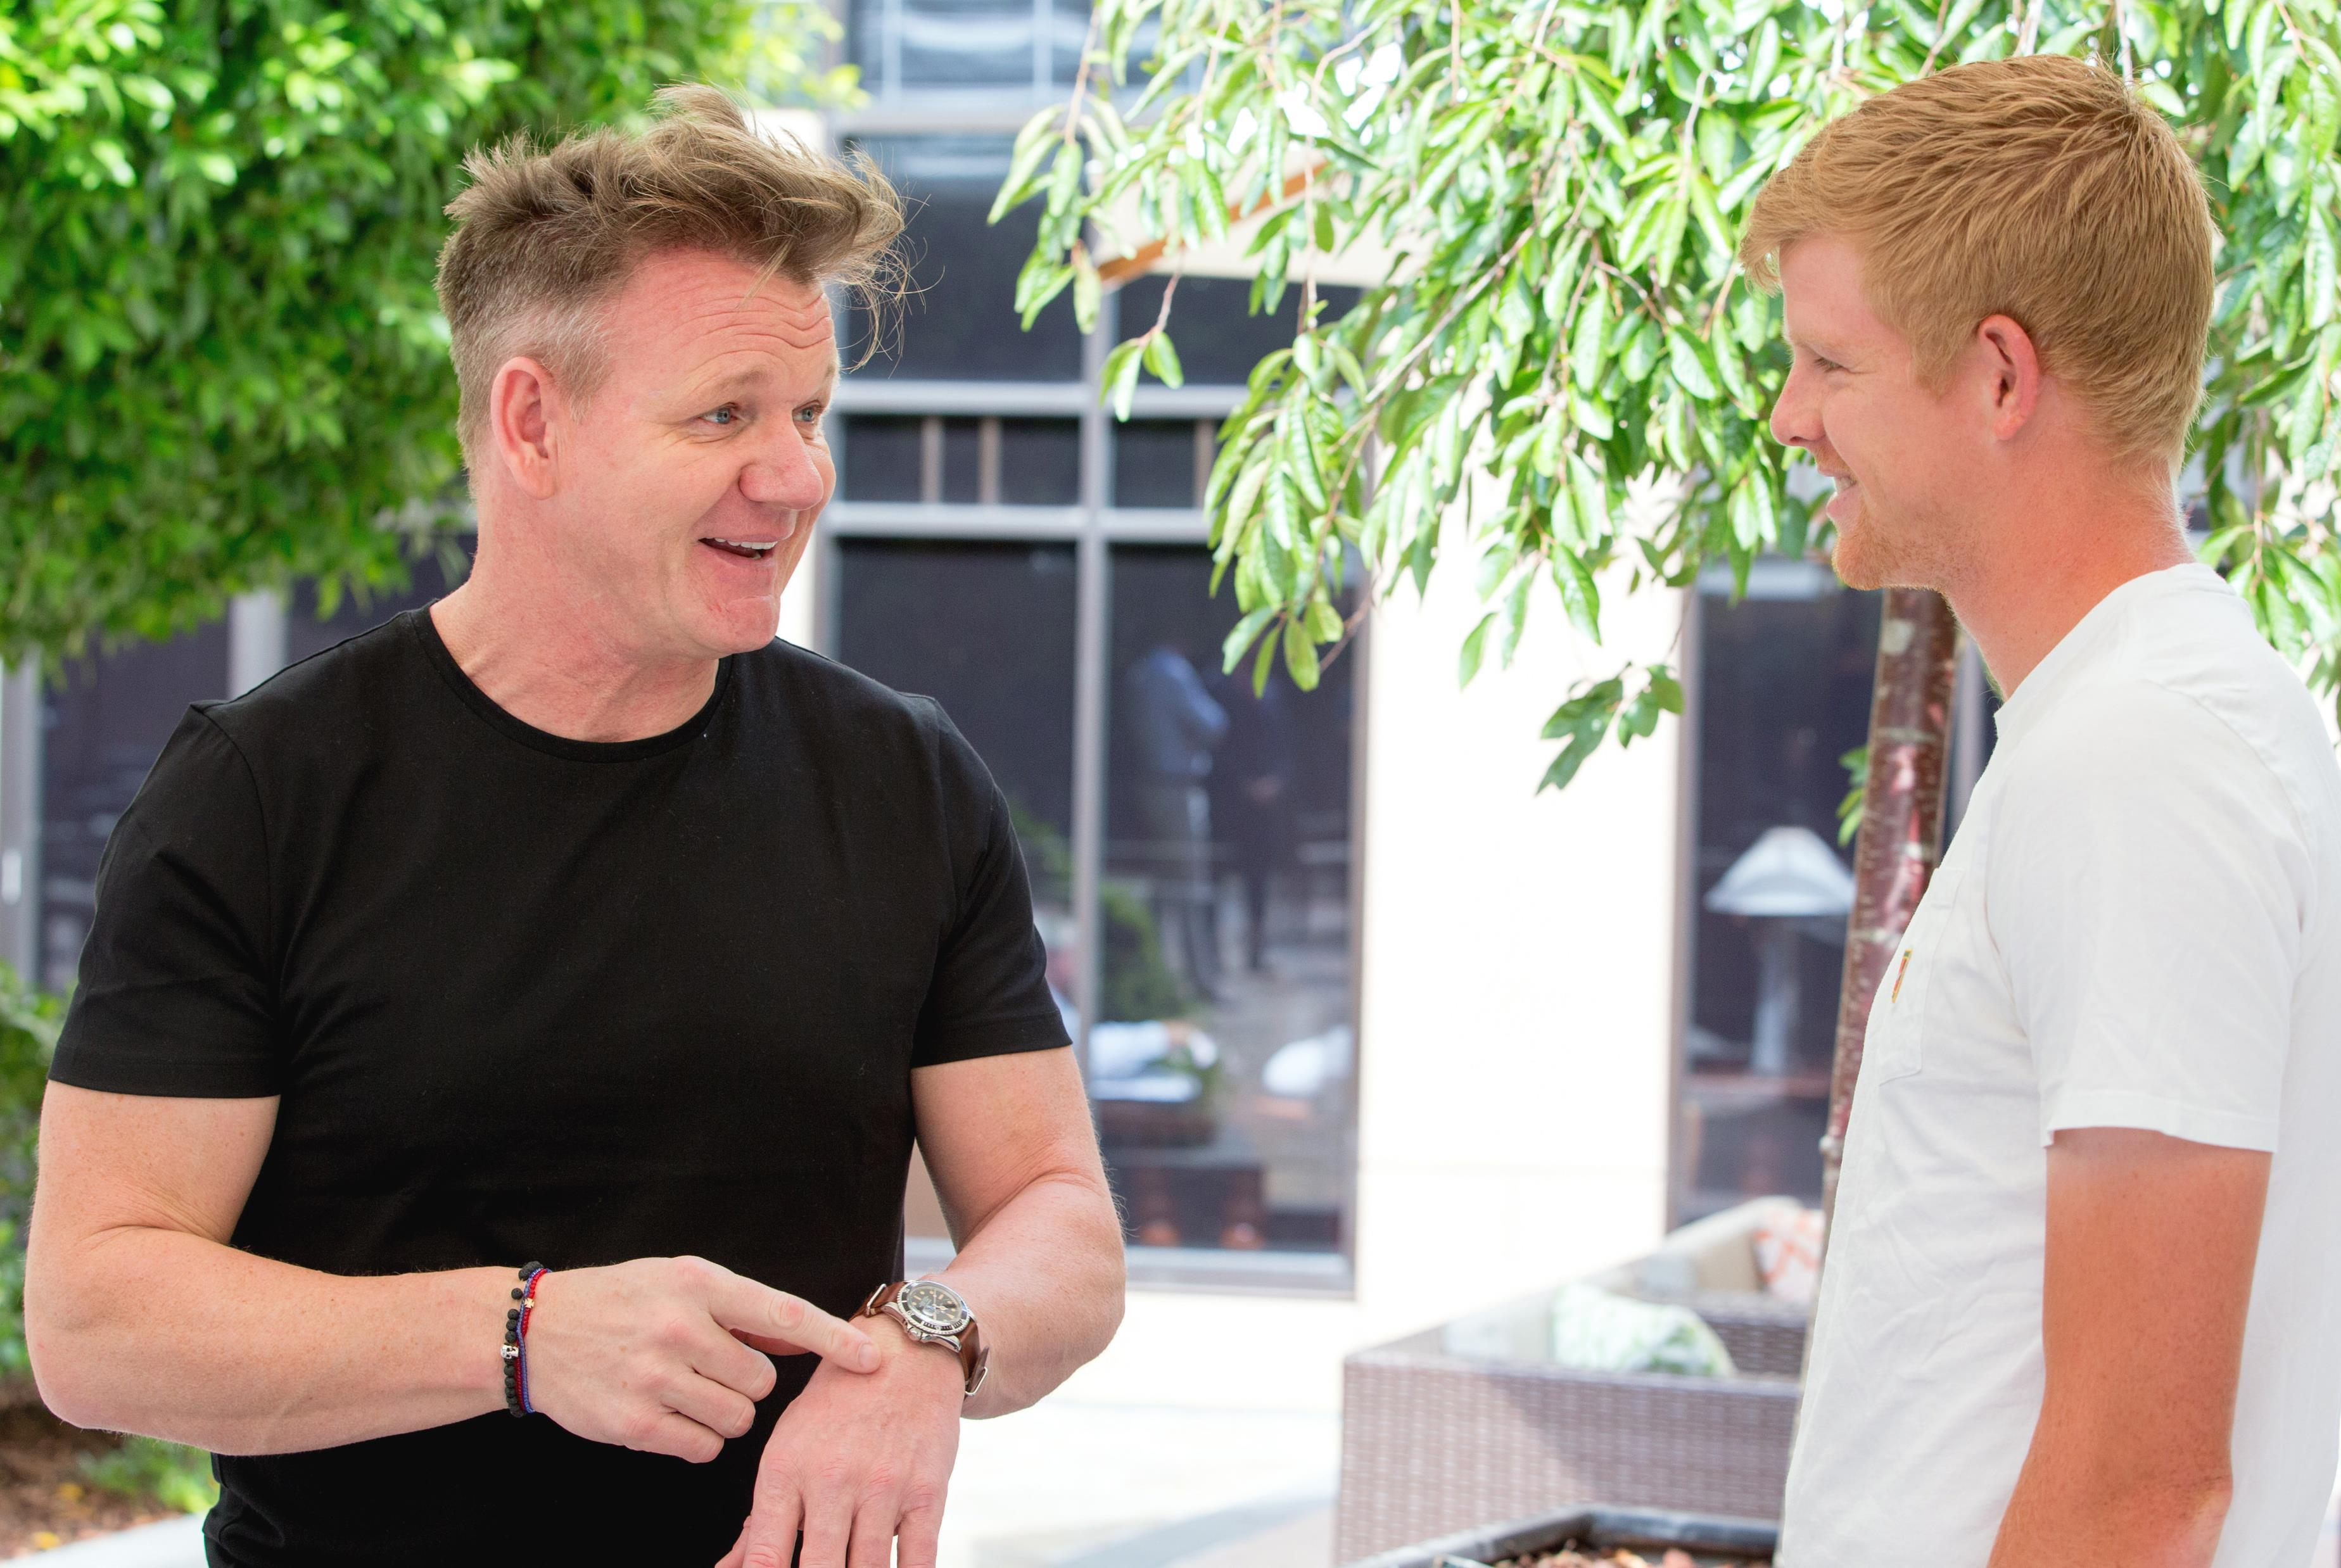 Kyle Edmund admitted he is a fan of Gordon Ramsay but cannot replicate him